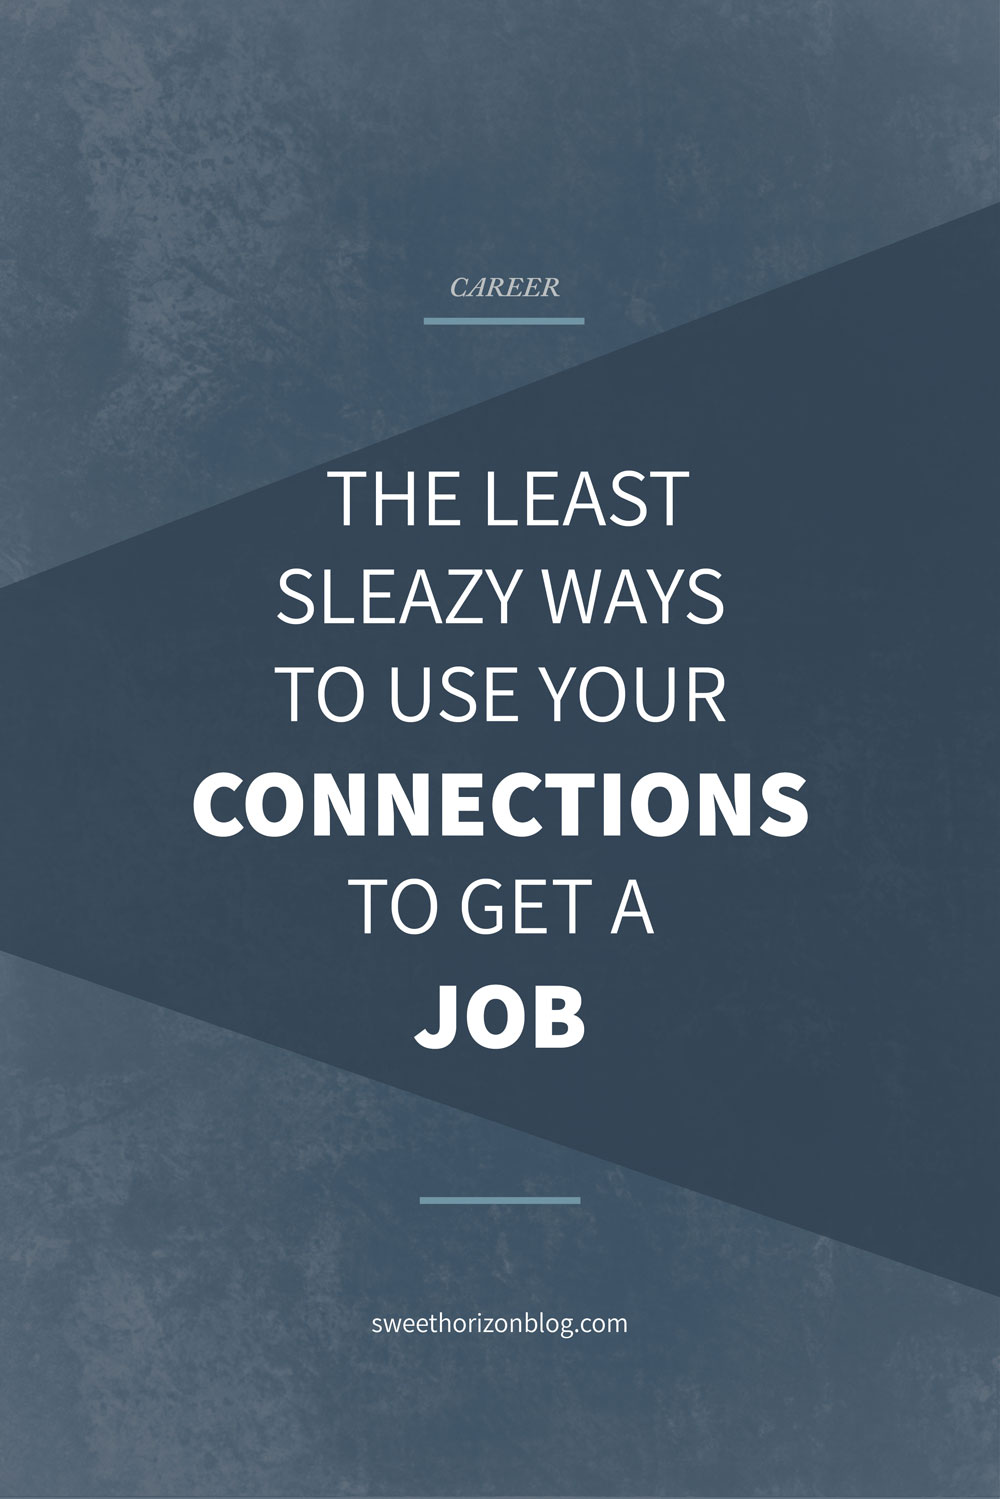 The Least Sleazy Ways to Use Your Connections to Get a Job from www.sweethorizonblog.com